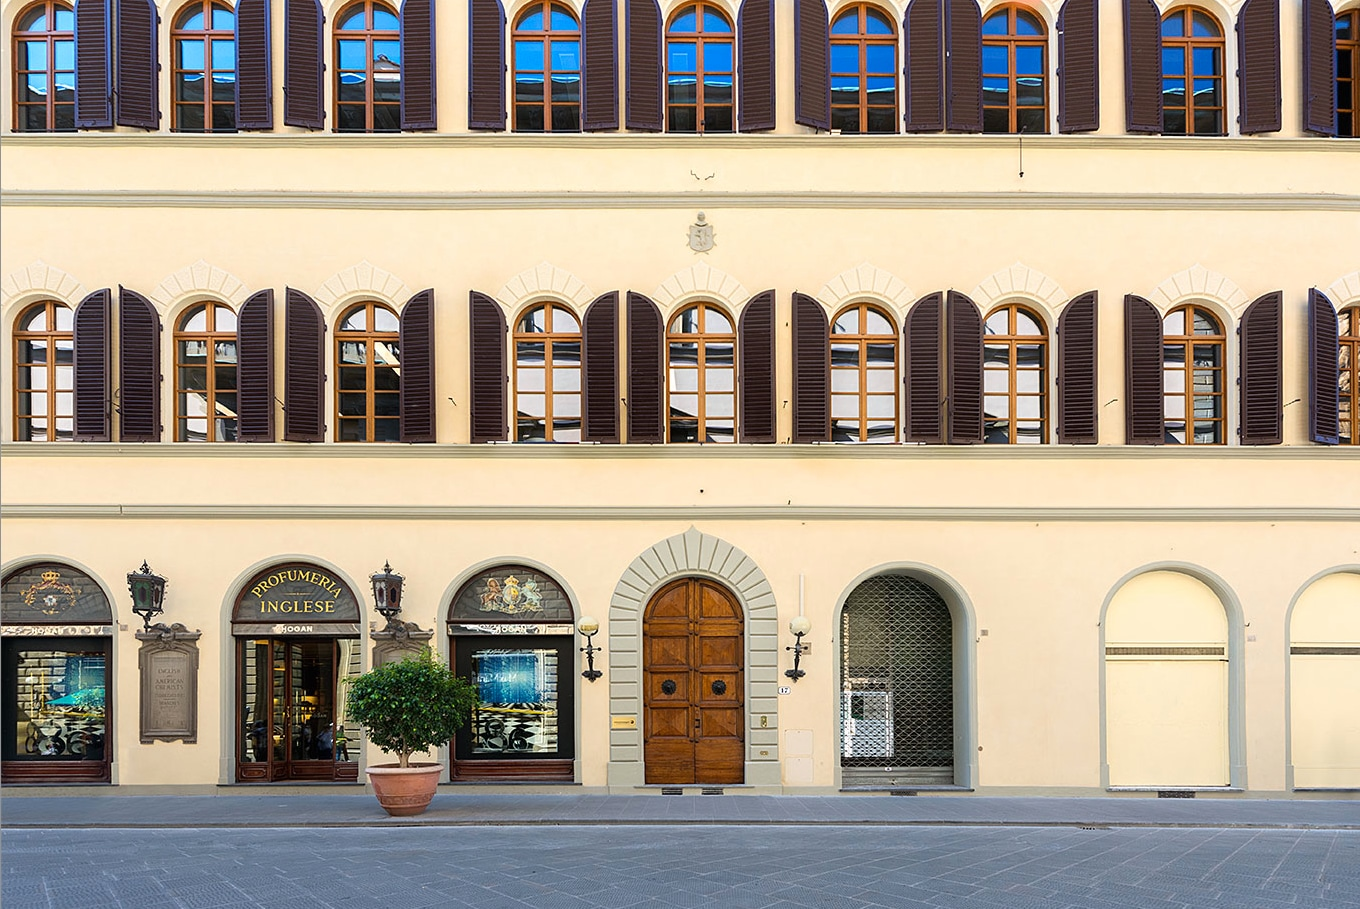 School of Fashion & Art of Istituto Marangoni in Florence